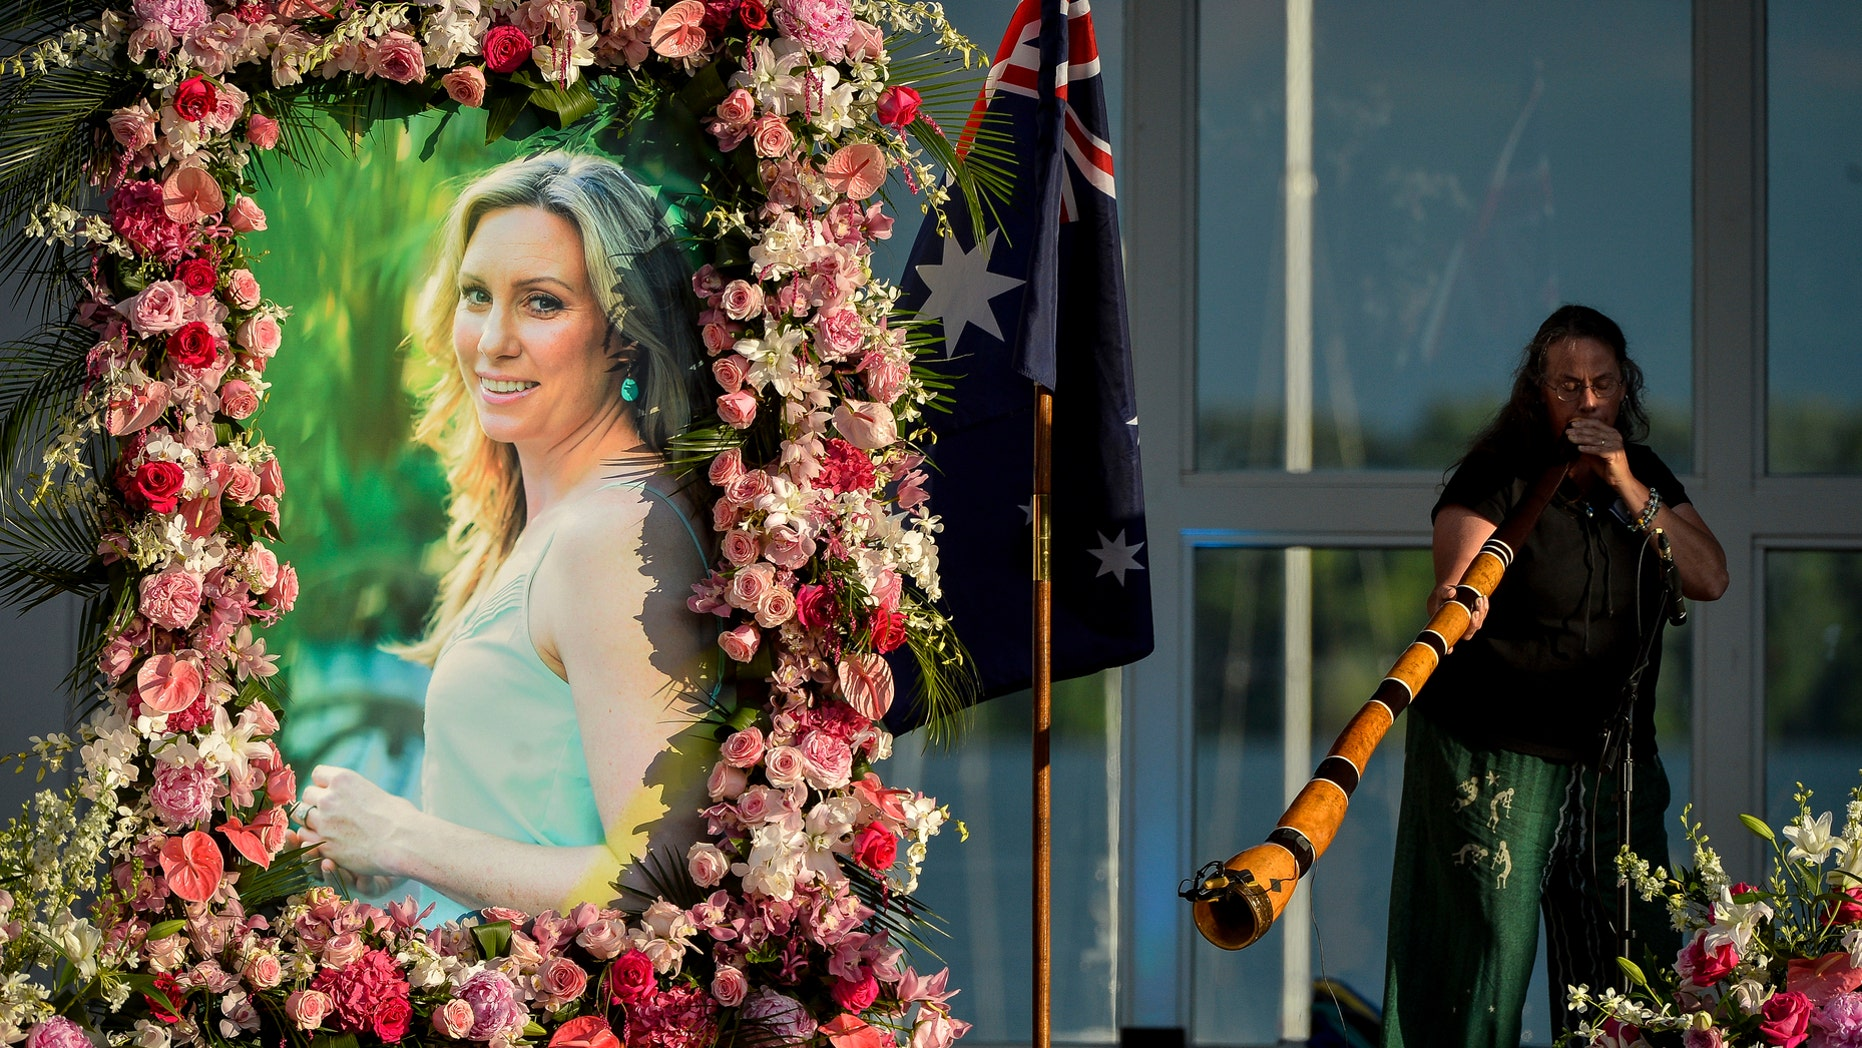 Former police officer Mohamed Noor breaks silence about Justine Damond shooting